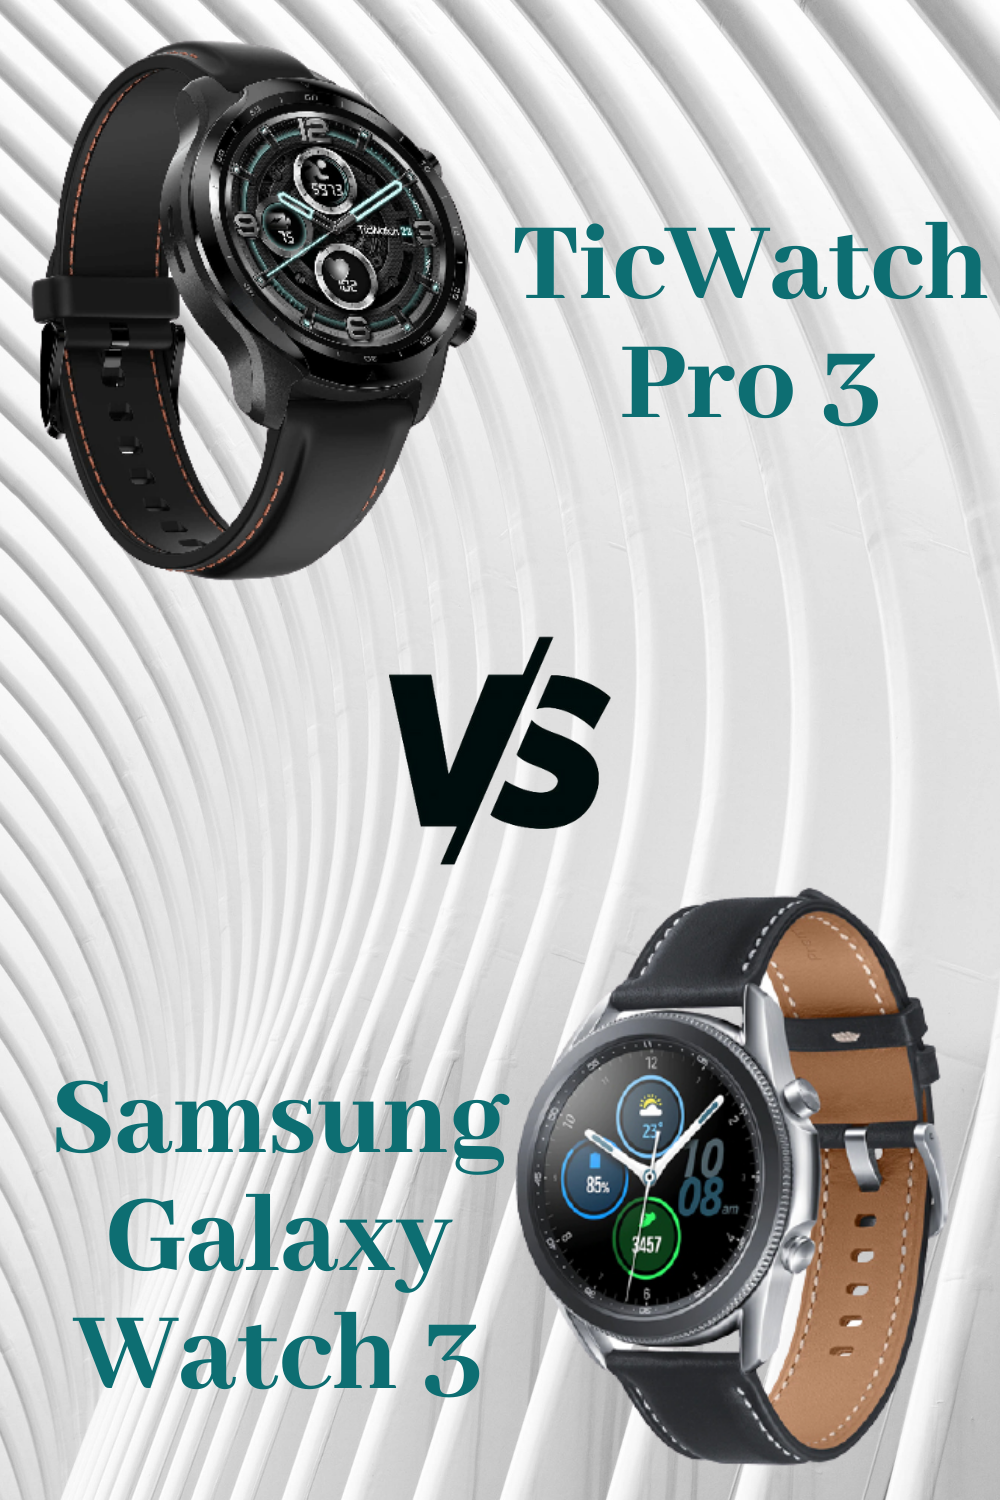 Ticwatch Pro 3 Vs Samsung Galaxy Watch 3 Which Smartwatch Is Better For Android In 2020 Samsung Samsung Galaxy Smart Watch